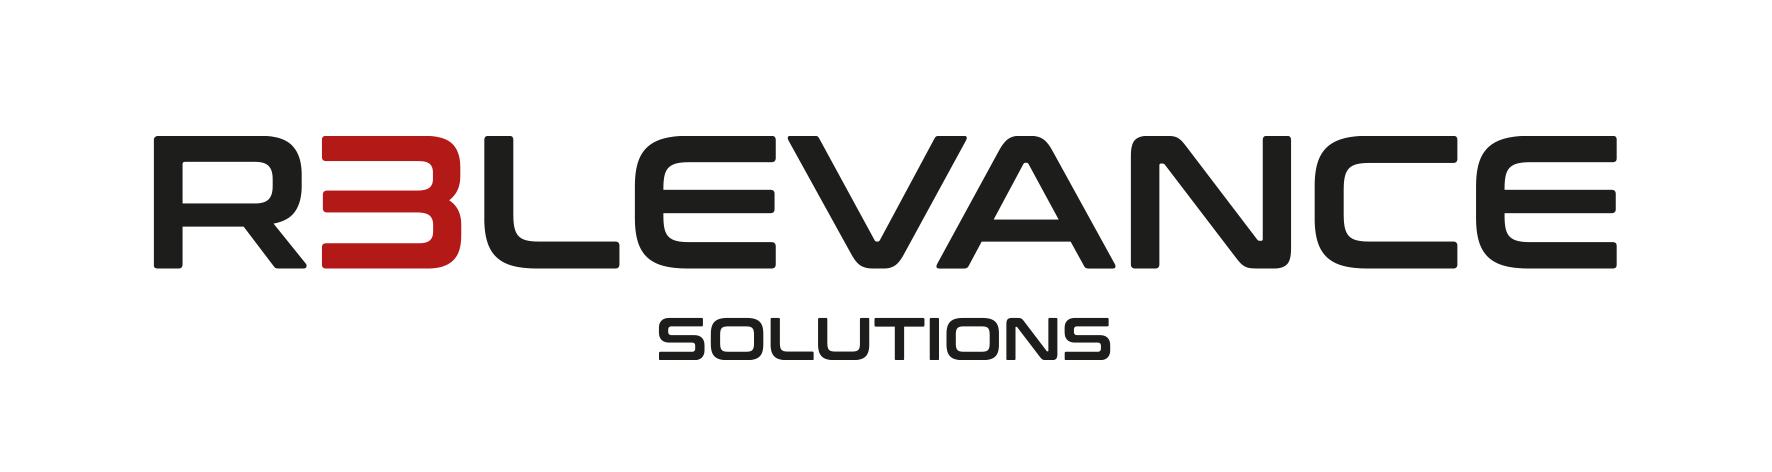 R3LEVANCE - SOLUTIONS | LOGO